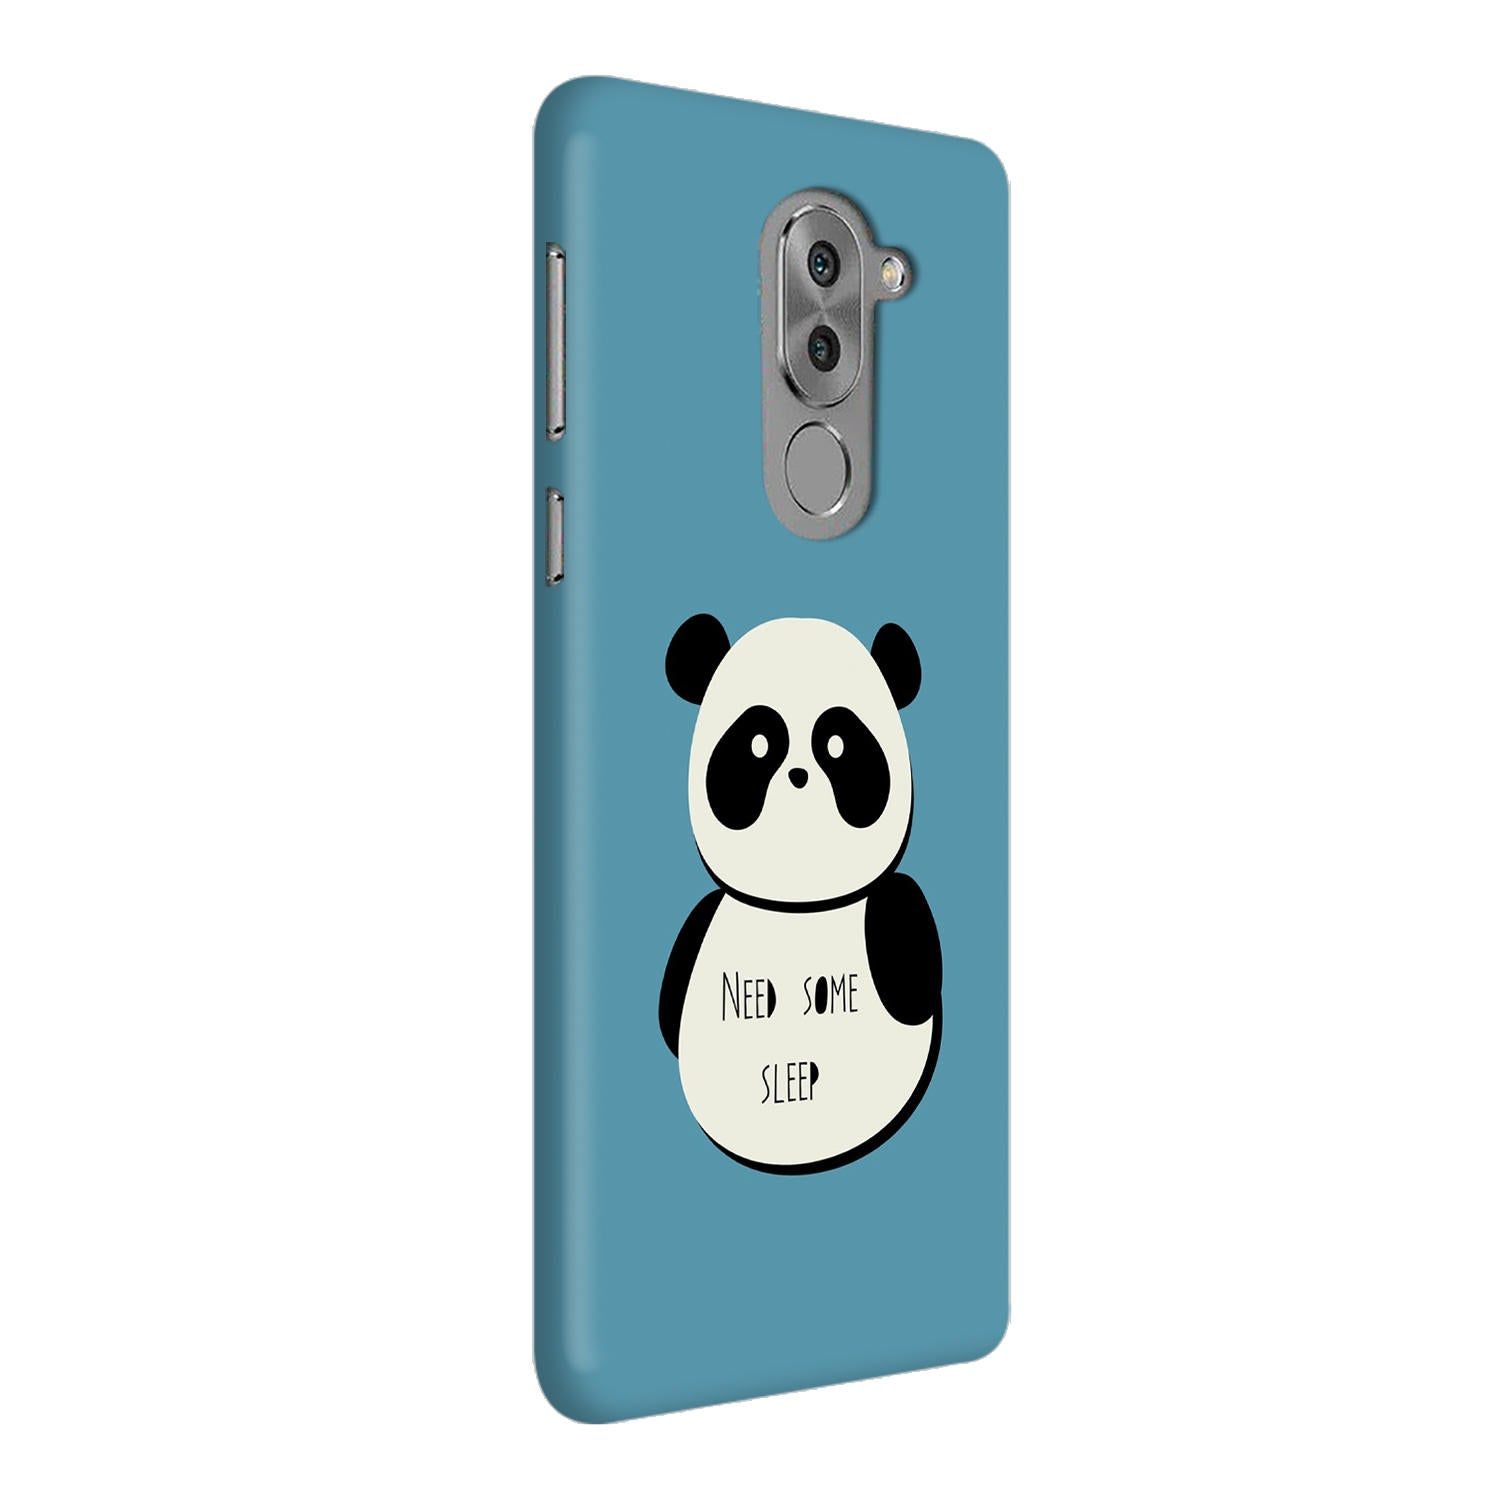 Sleepy Panda Honor 6X Mobile Cover Case